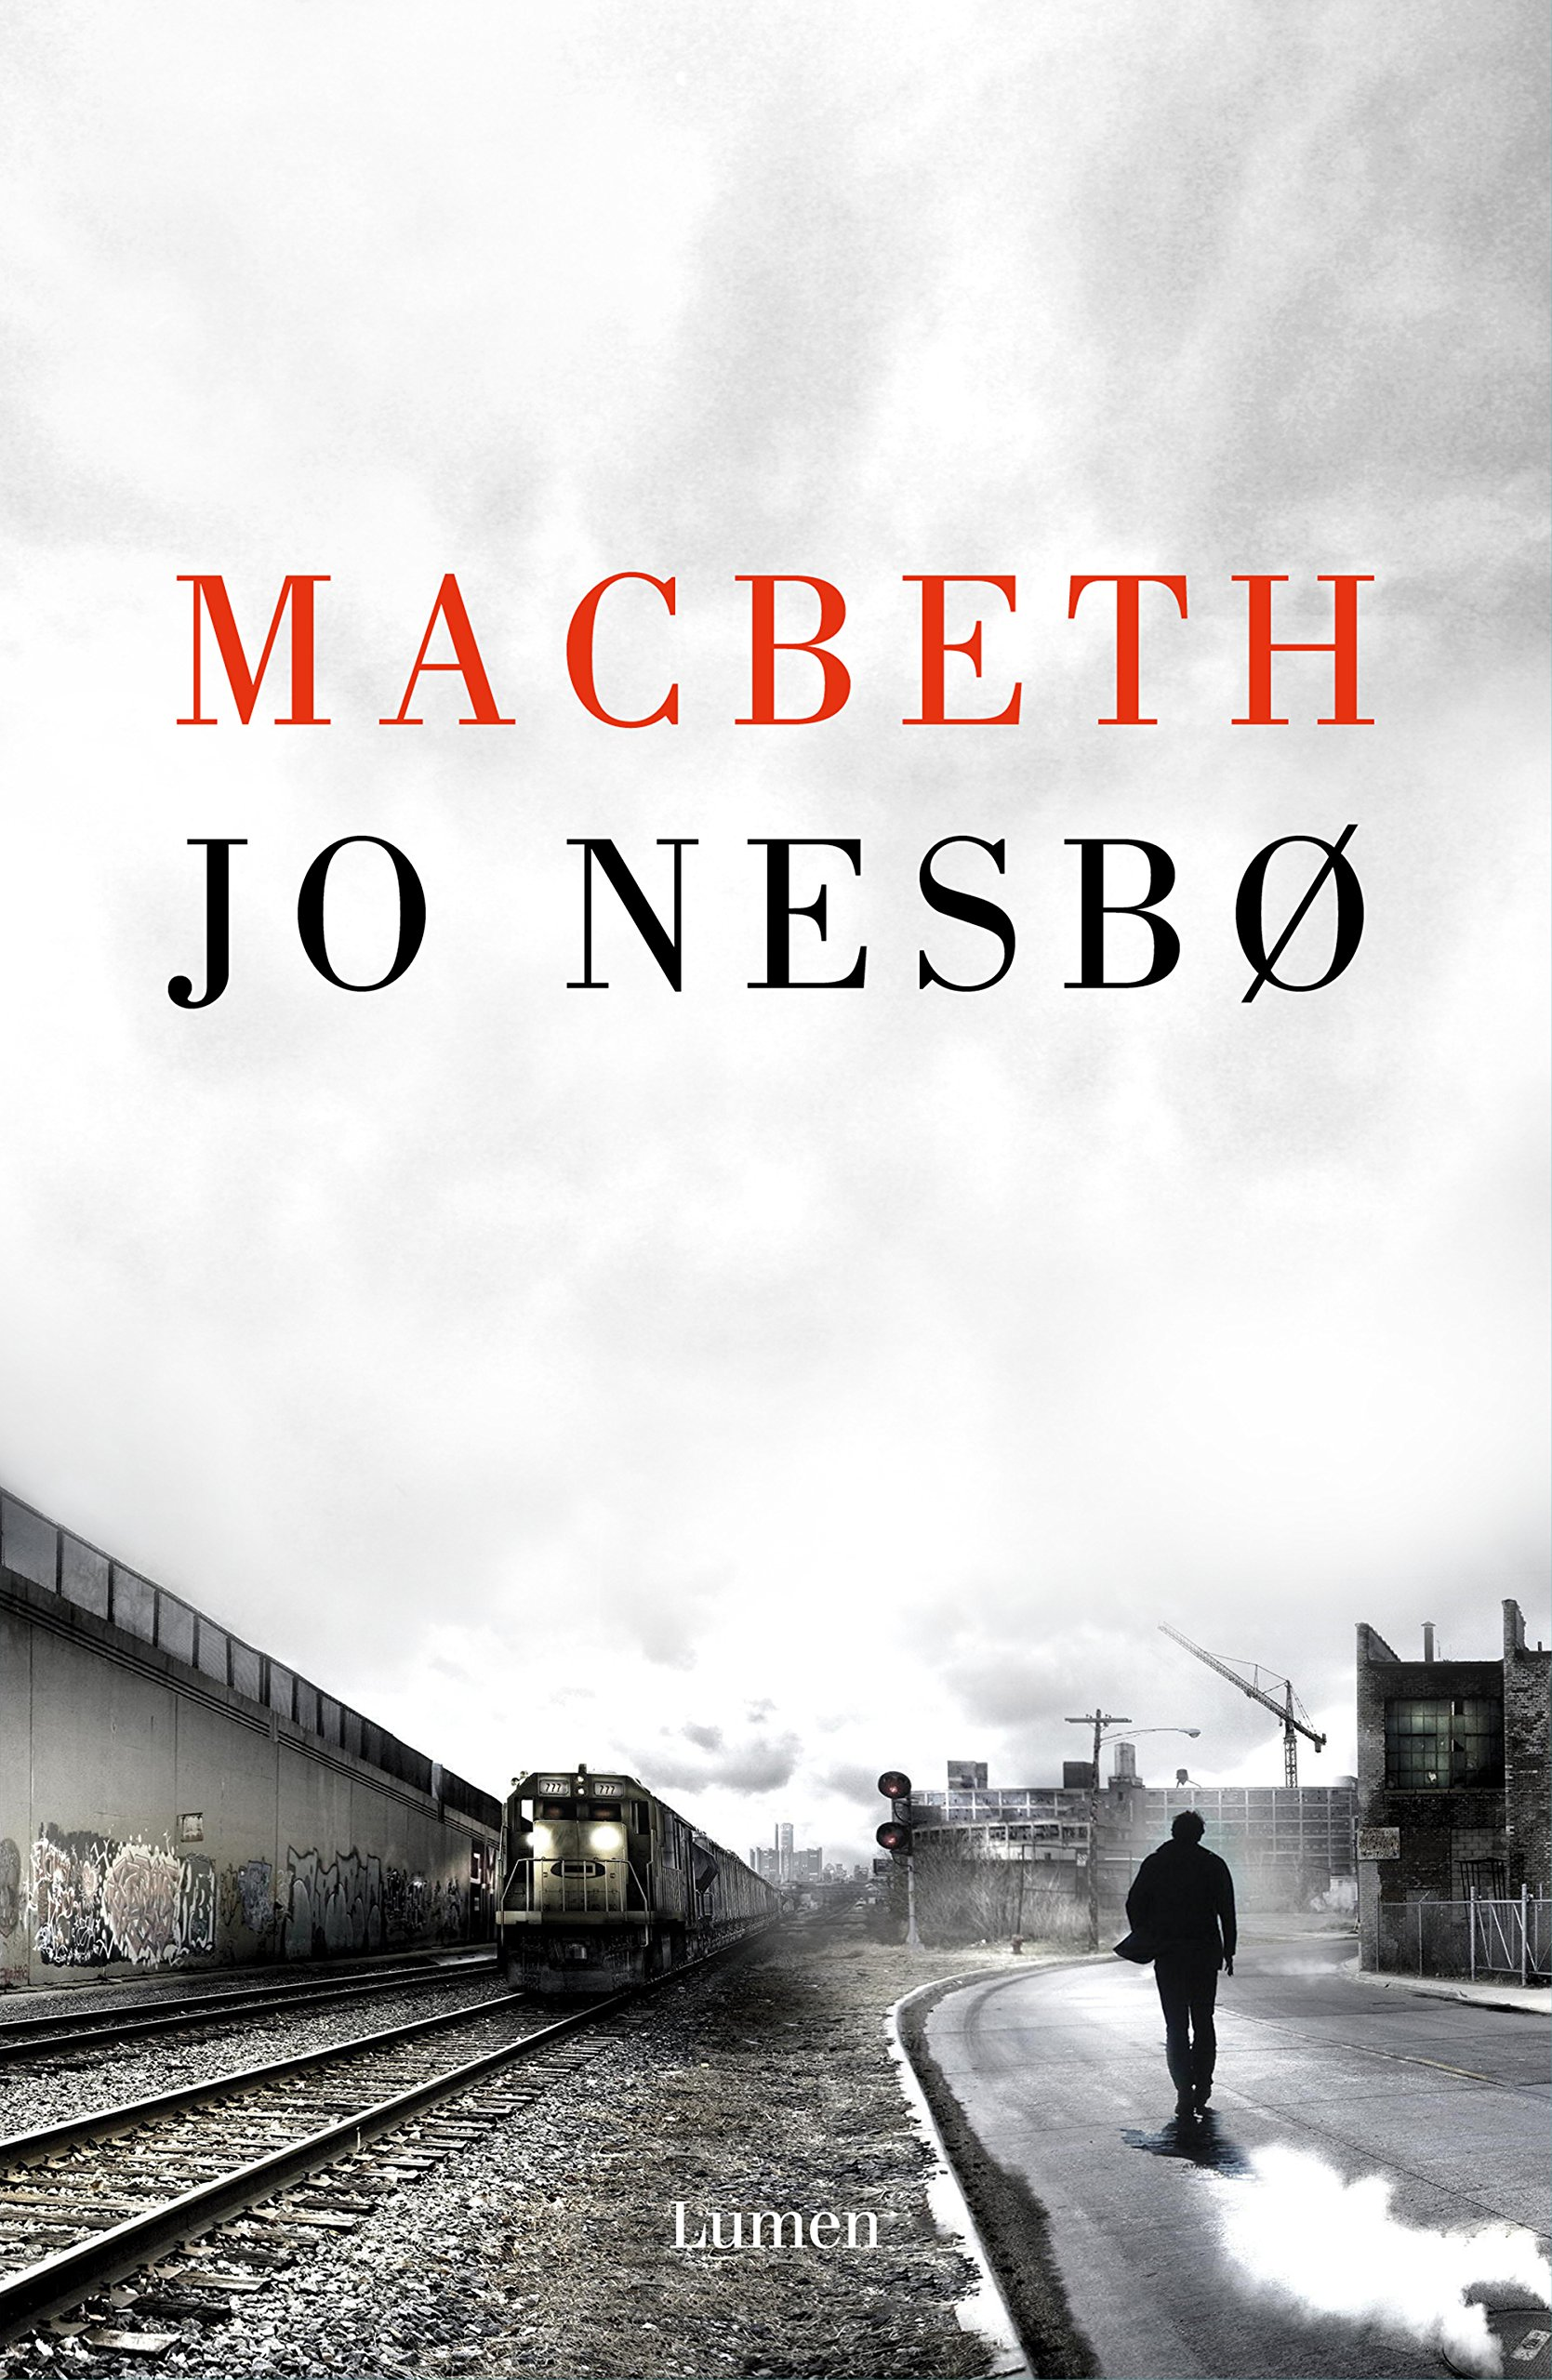 Image result for macbeth jo nesbo book cover